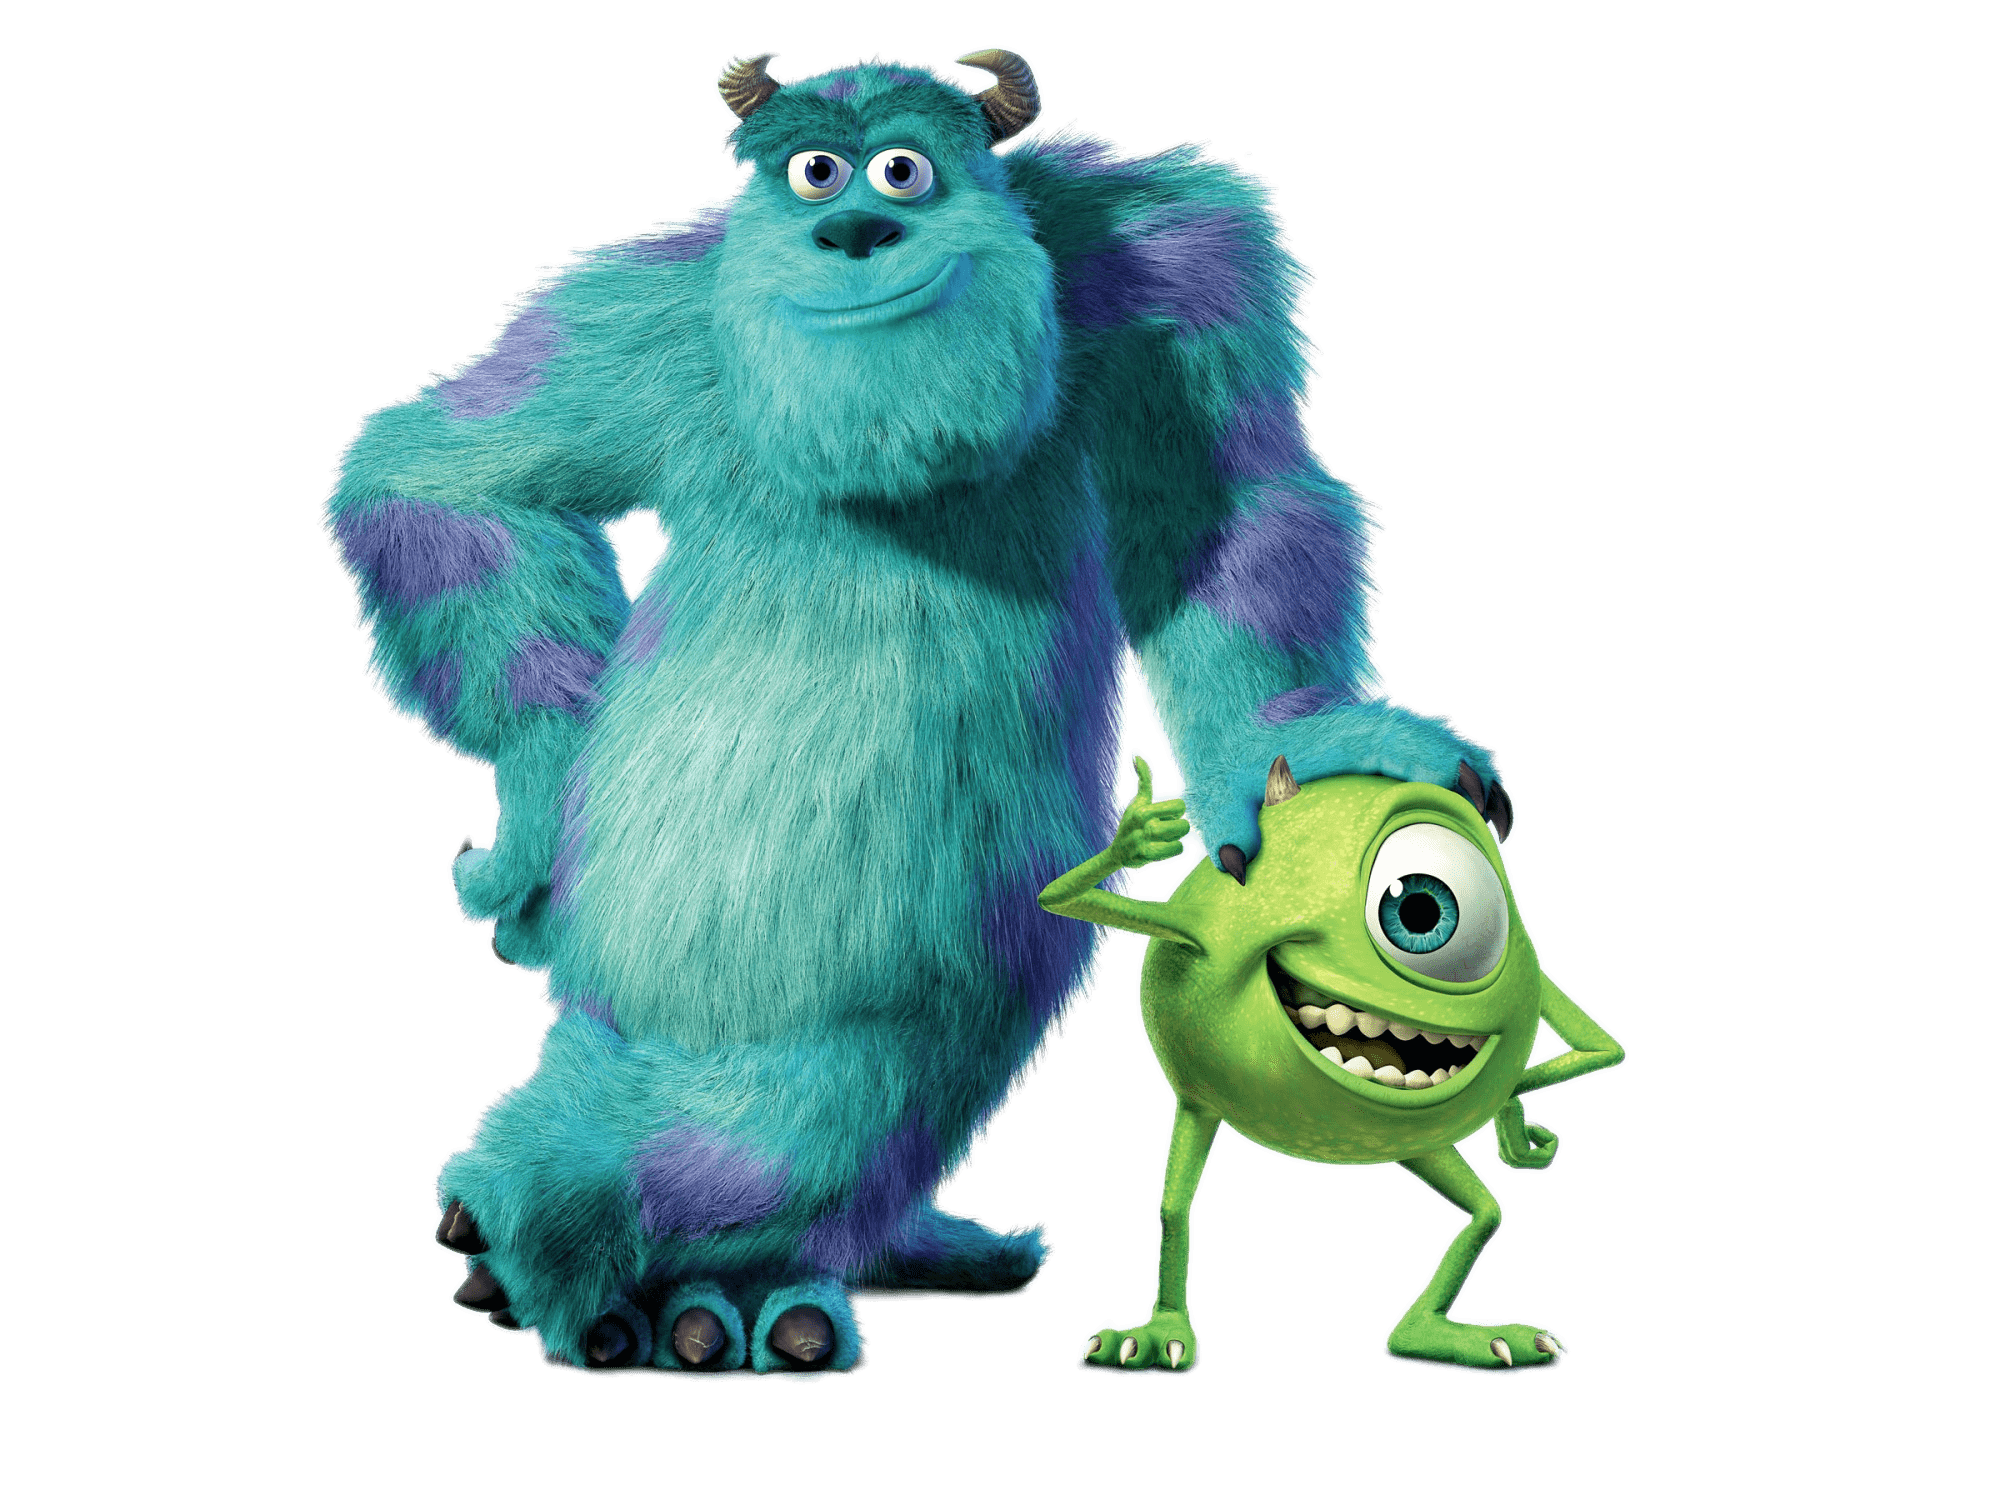 Mike Sully Monsters Inc Characters Monsters Inc Cartoon Wallpaper Hd